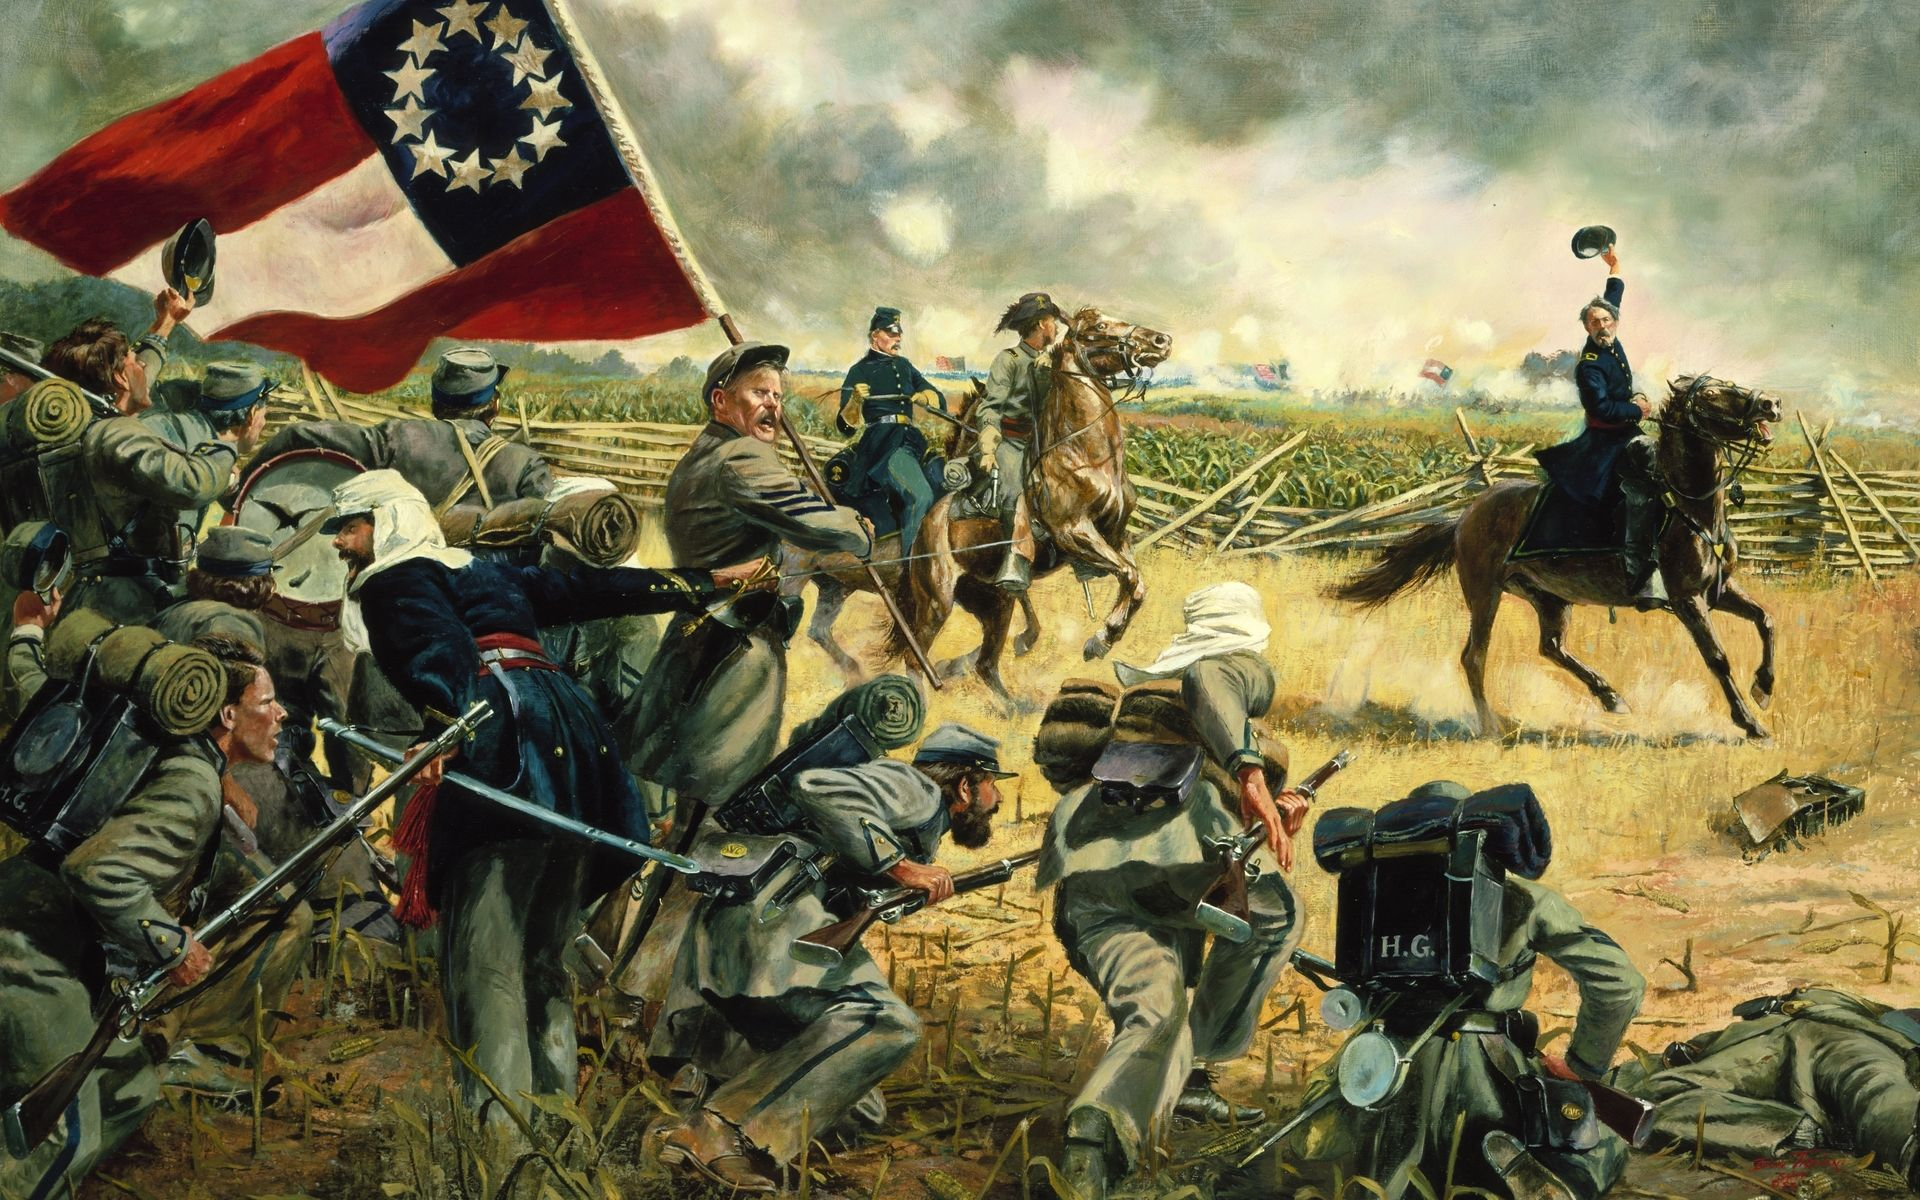 17 best images about american civil war allen 3rd six weeks on 17 best images about american civil war allen 3rd six weeks interactive map american civil war and general sherman